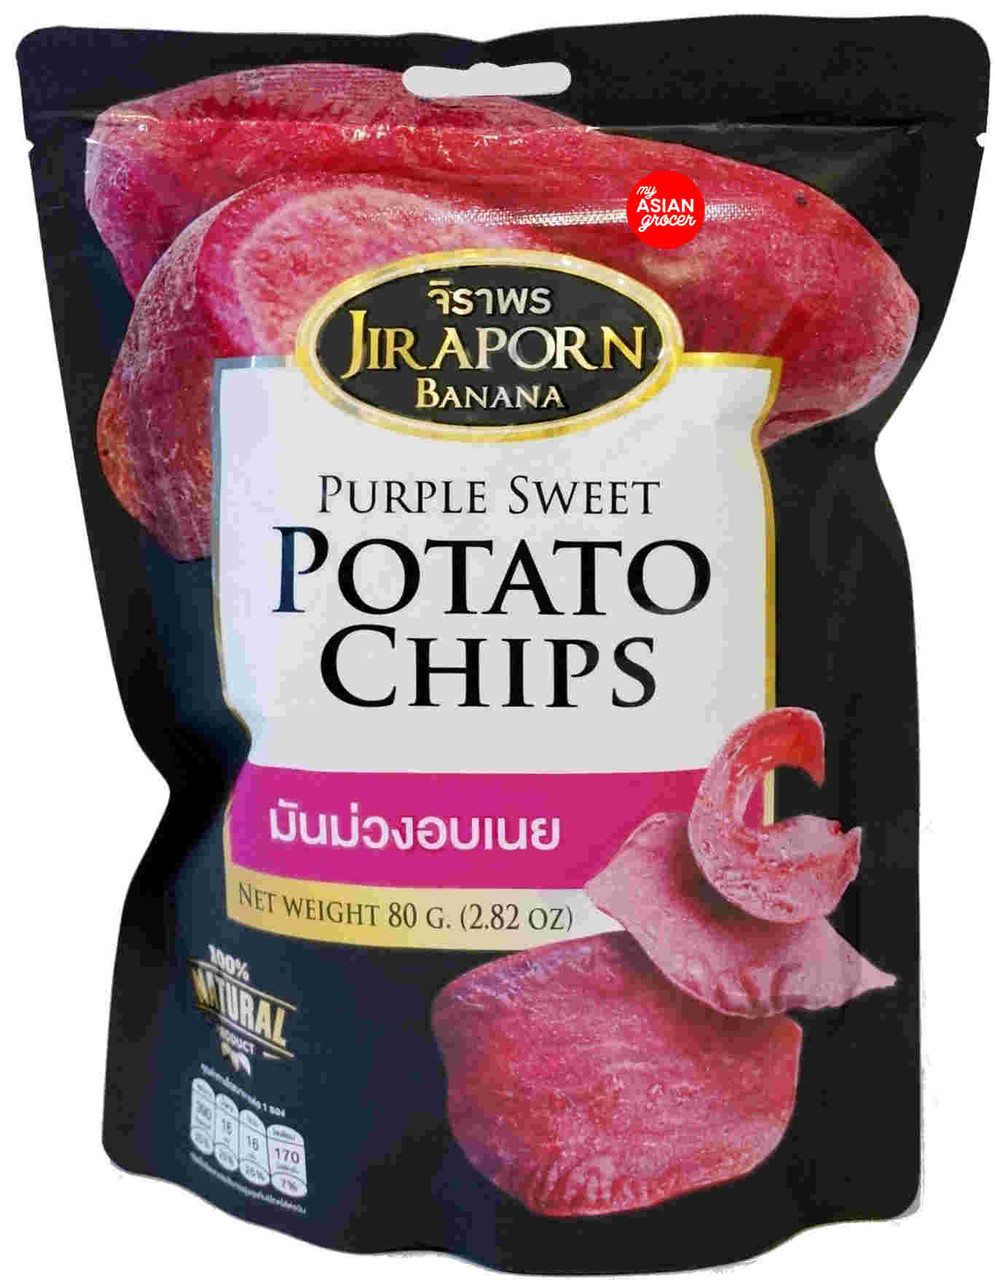 Jiraporn Purple Sweet Potato Chips 80g